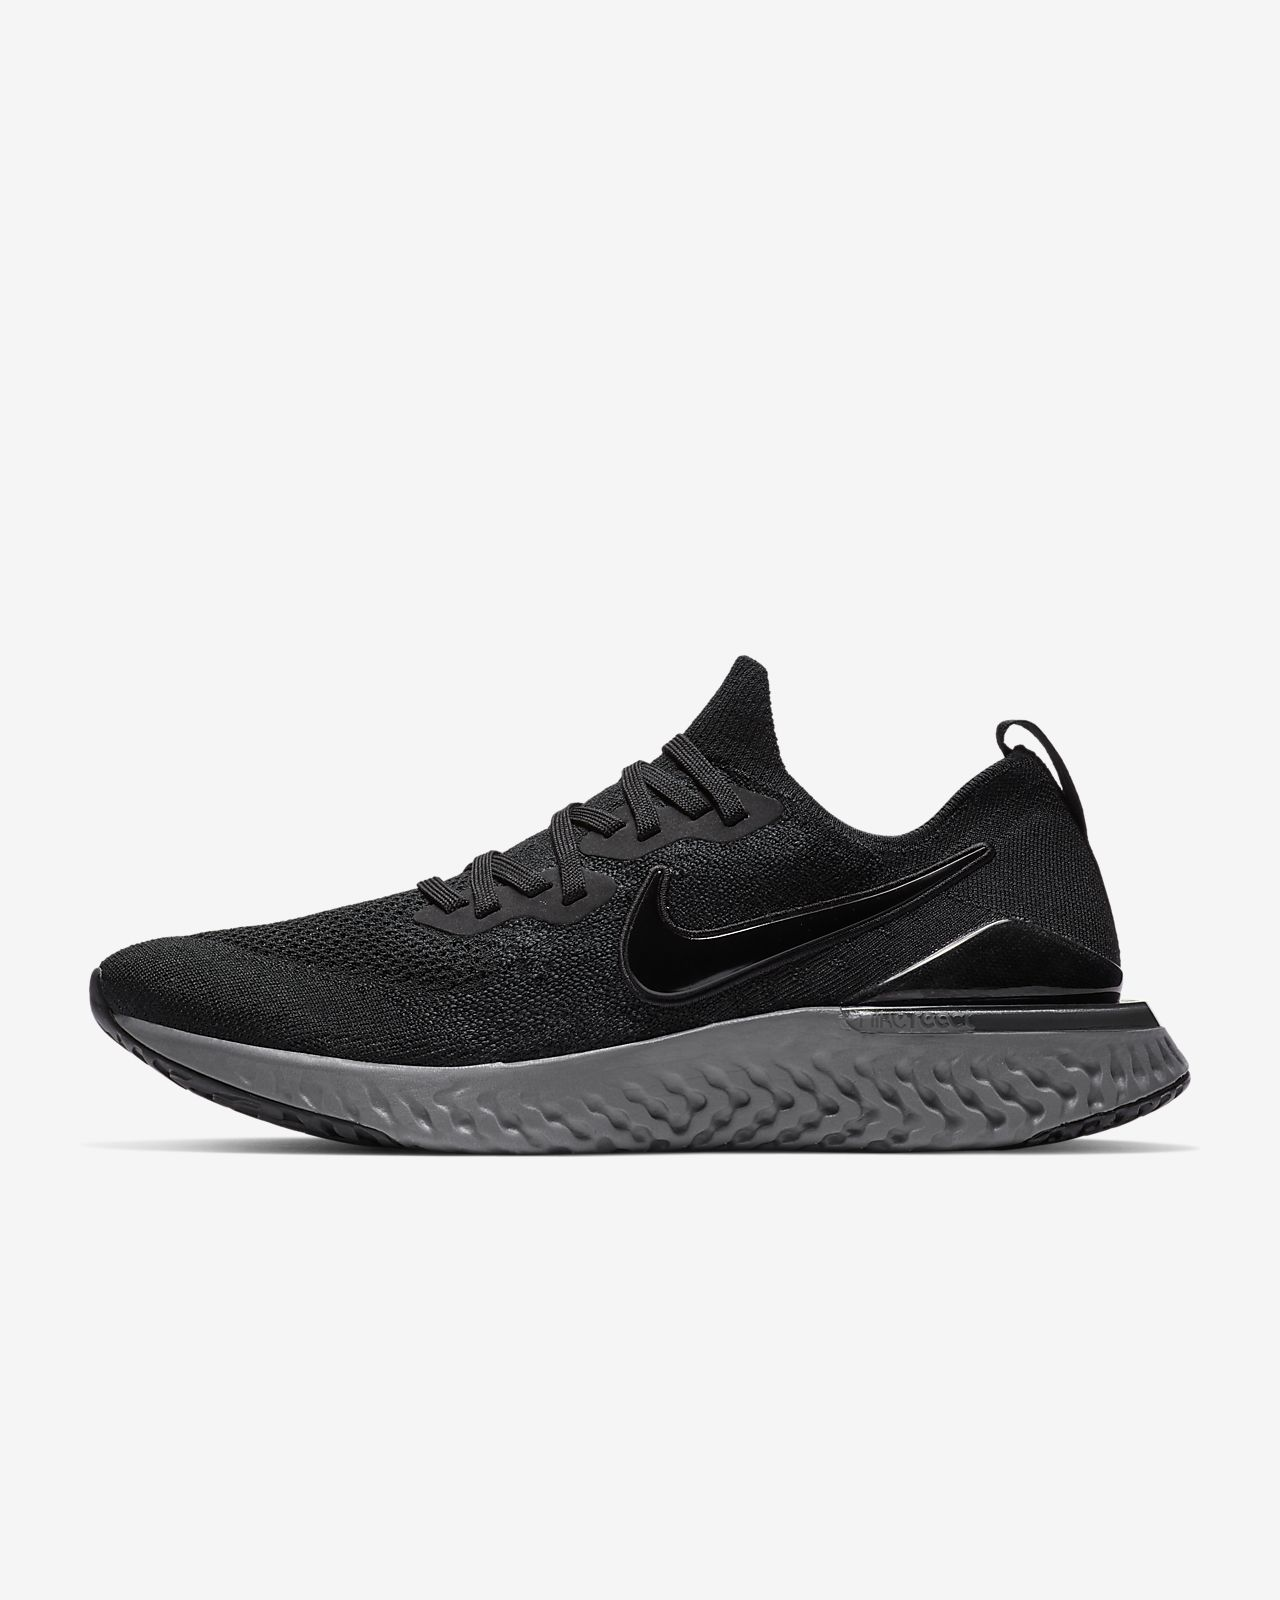 wholesale dealer ba02c 40a03 ... Chaussure de running Nike Epic React Flyknit 2 pour Homme